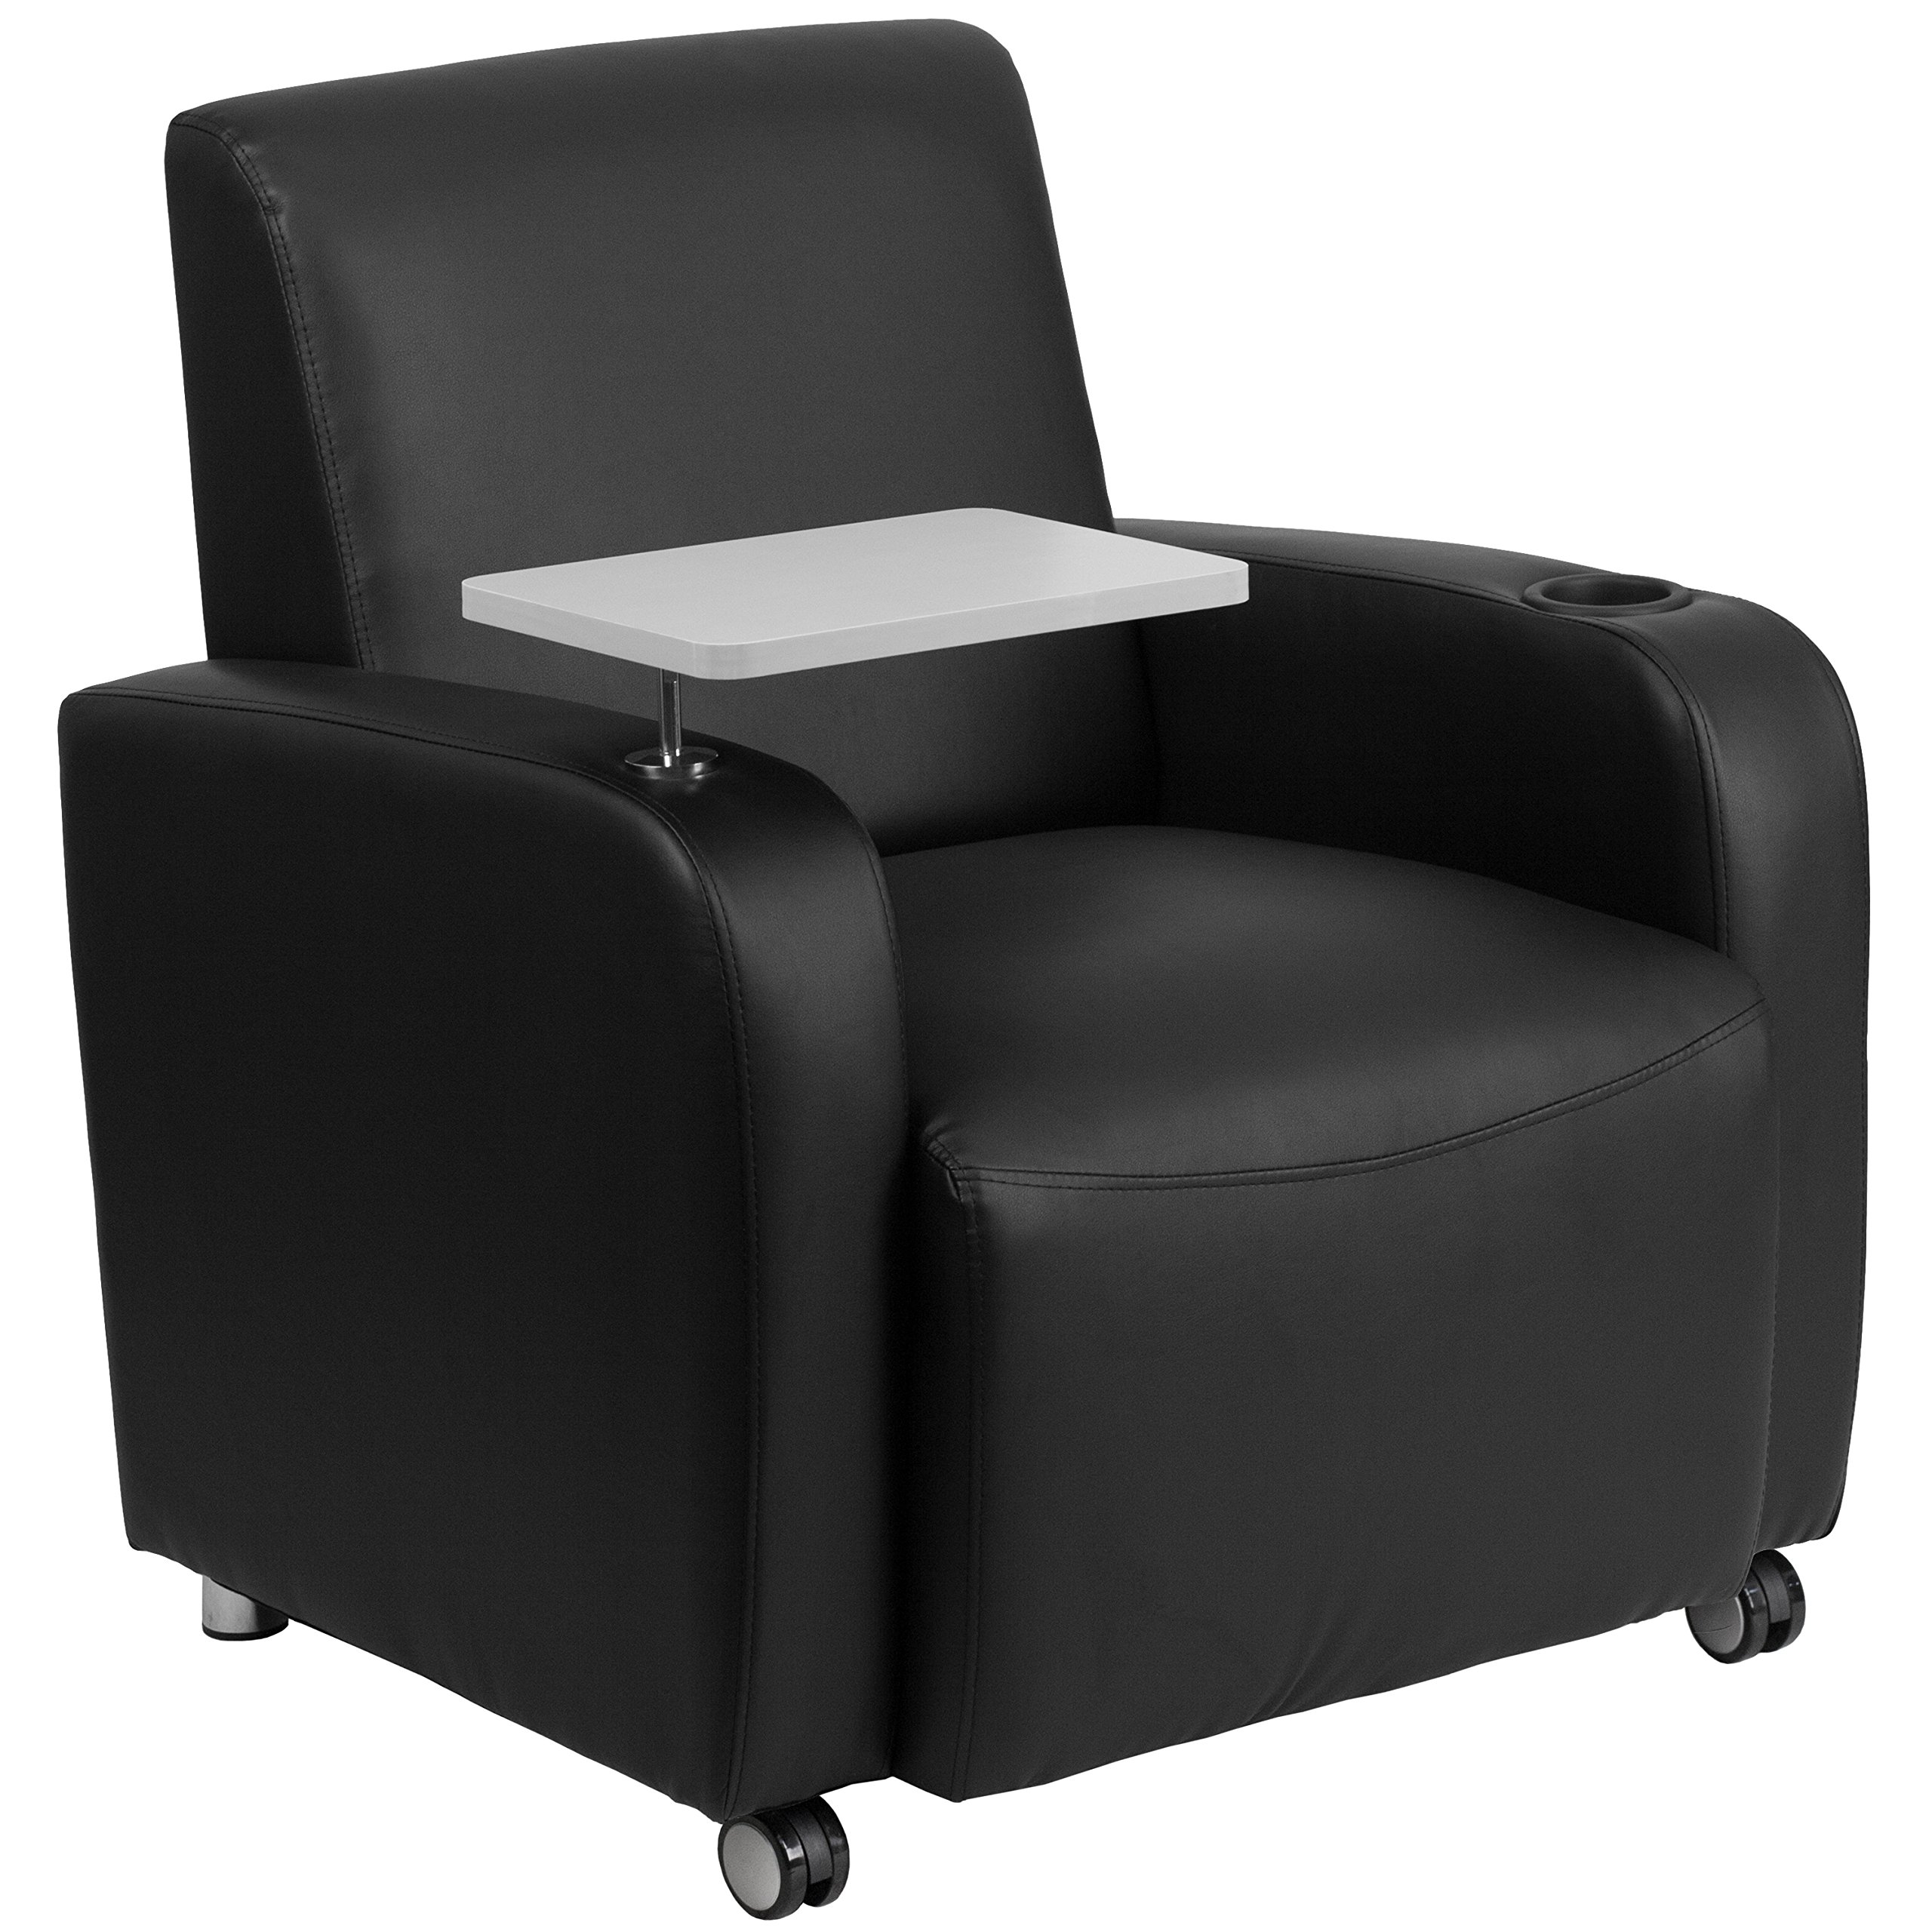 Flash Furniture Black Leather Guest Chair with Tablet Arm, Front Wheel Casters and Cup Holder by Flash Furniture